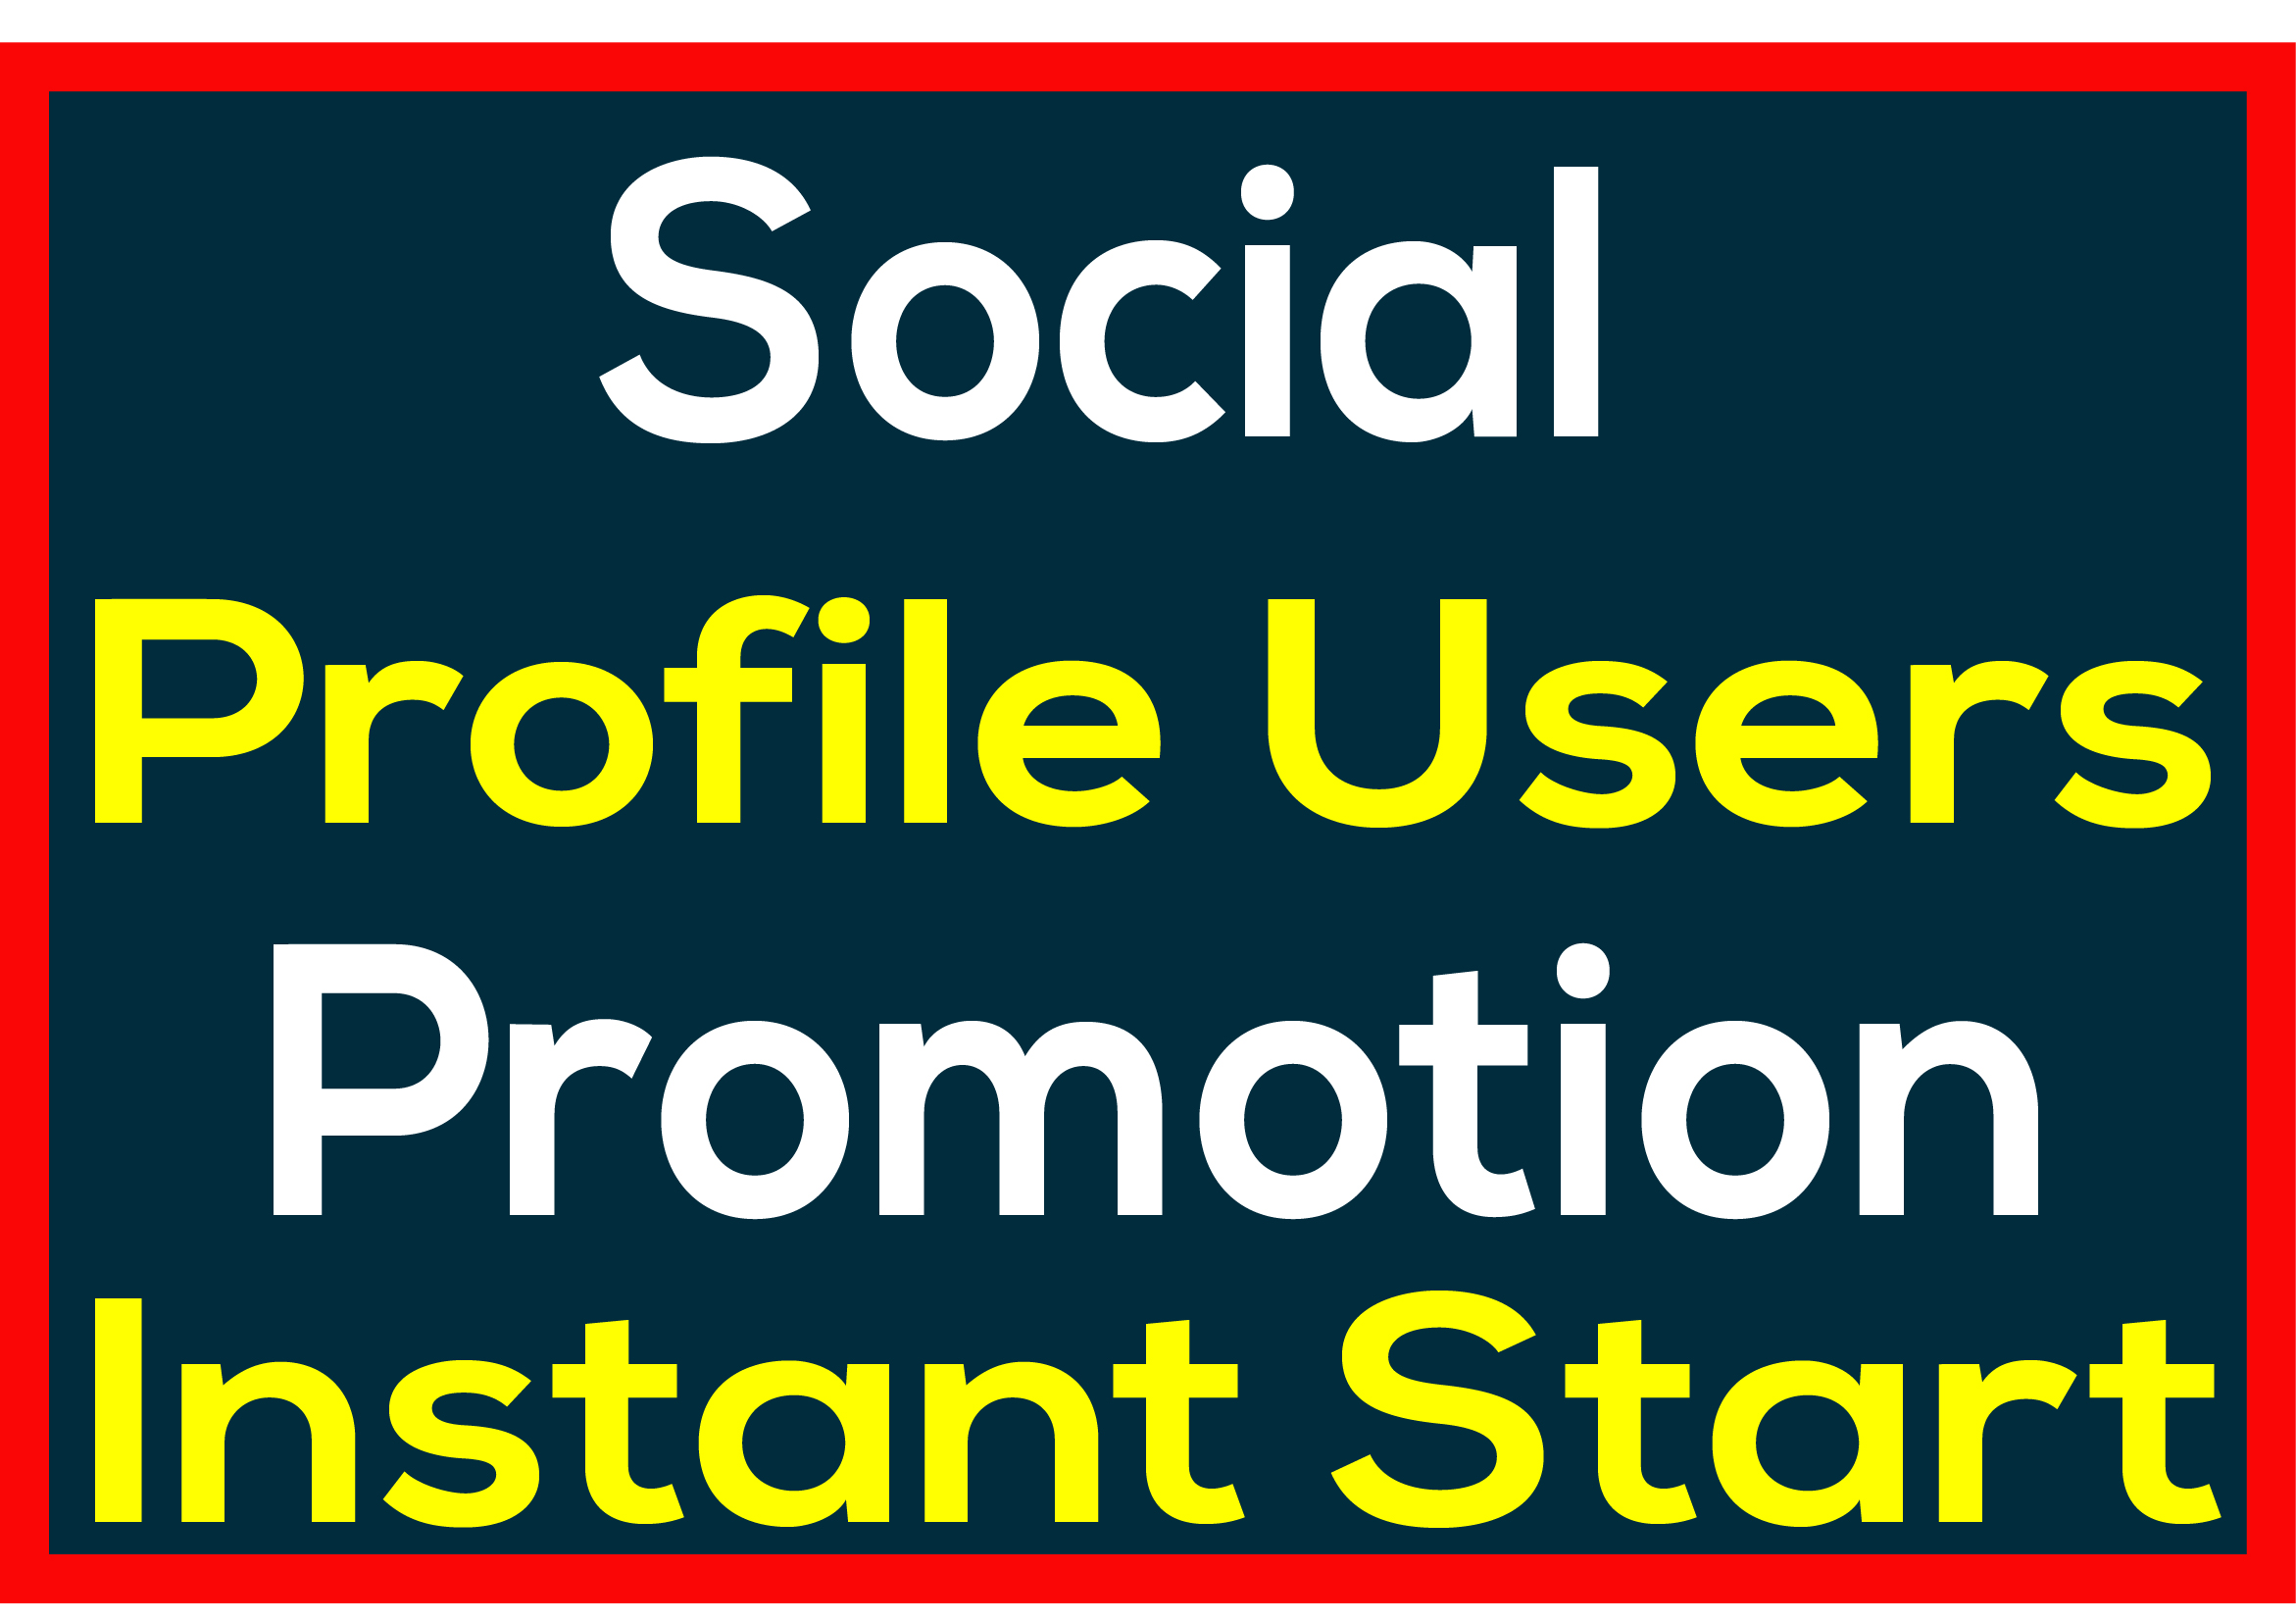 Social Media PROFILE HQ User Promotion